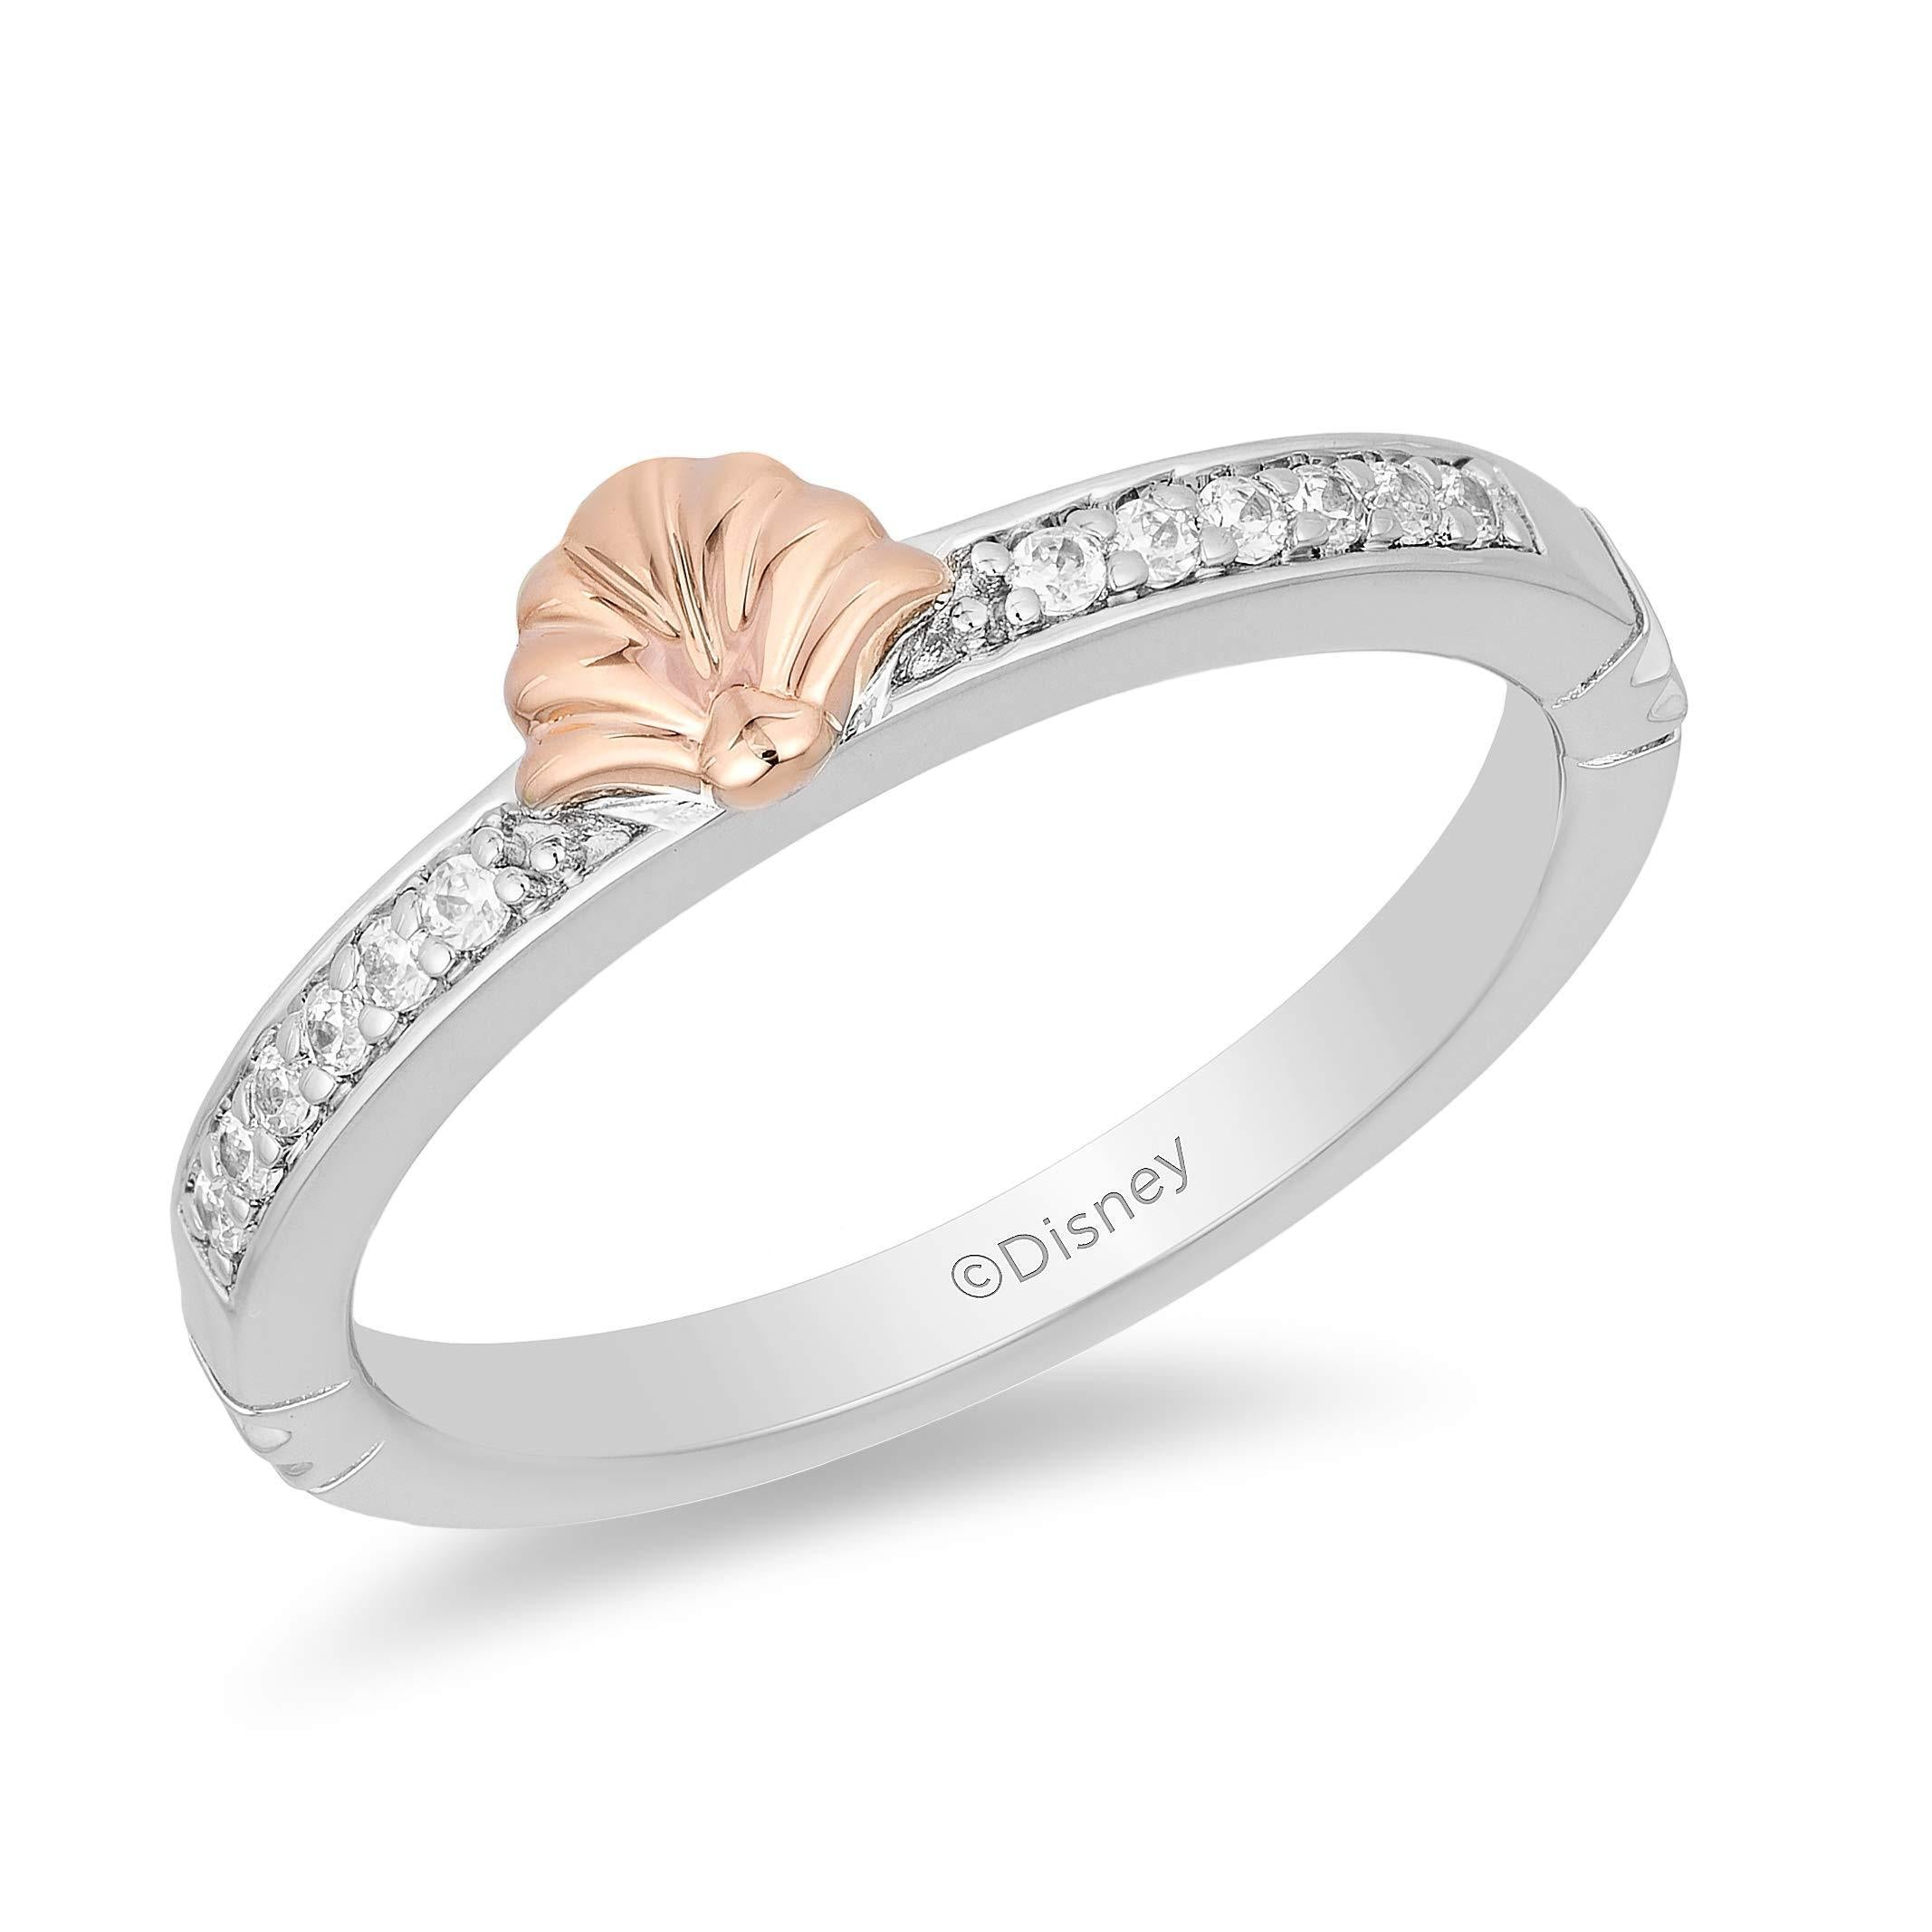 enchanted_disney-ariel_ring-9k_rose_gold_and_sterling_silver_0.10CTTW_1